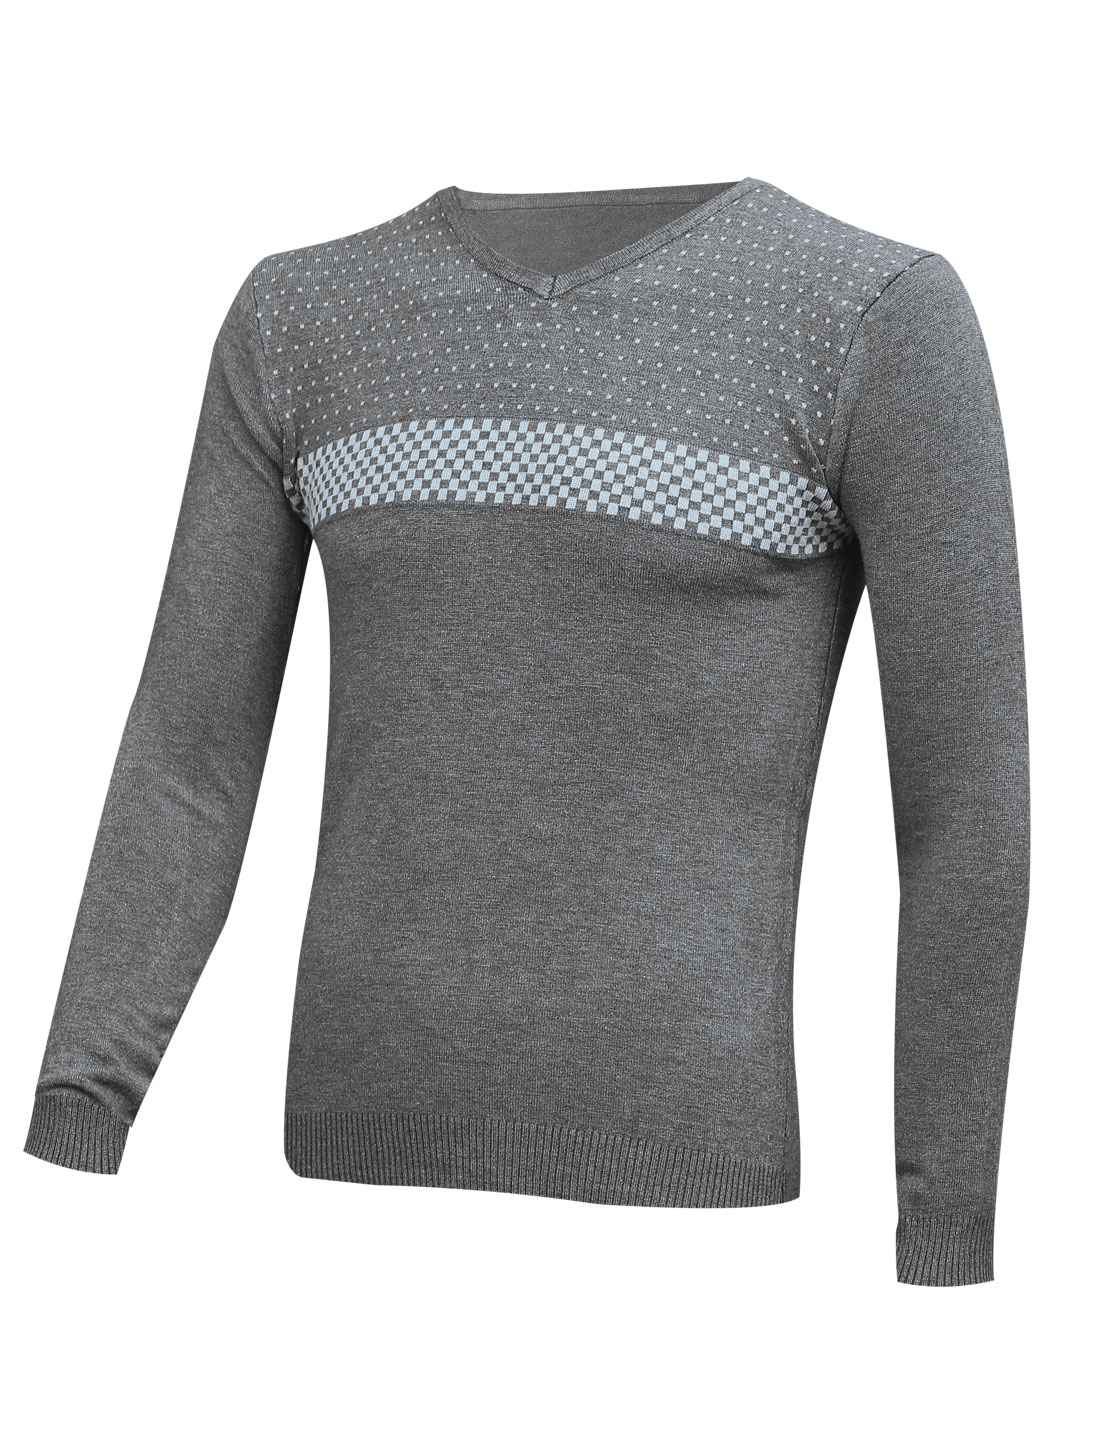 Pullover Long Sleeves Plaids Dark Gray Knit Shirt for Man S